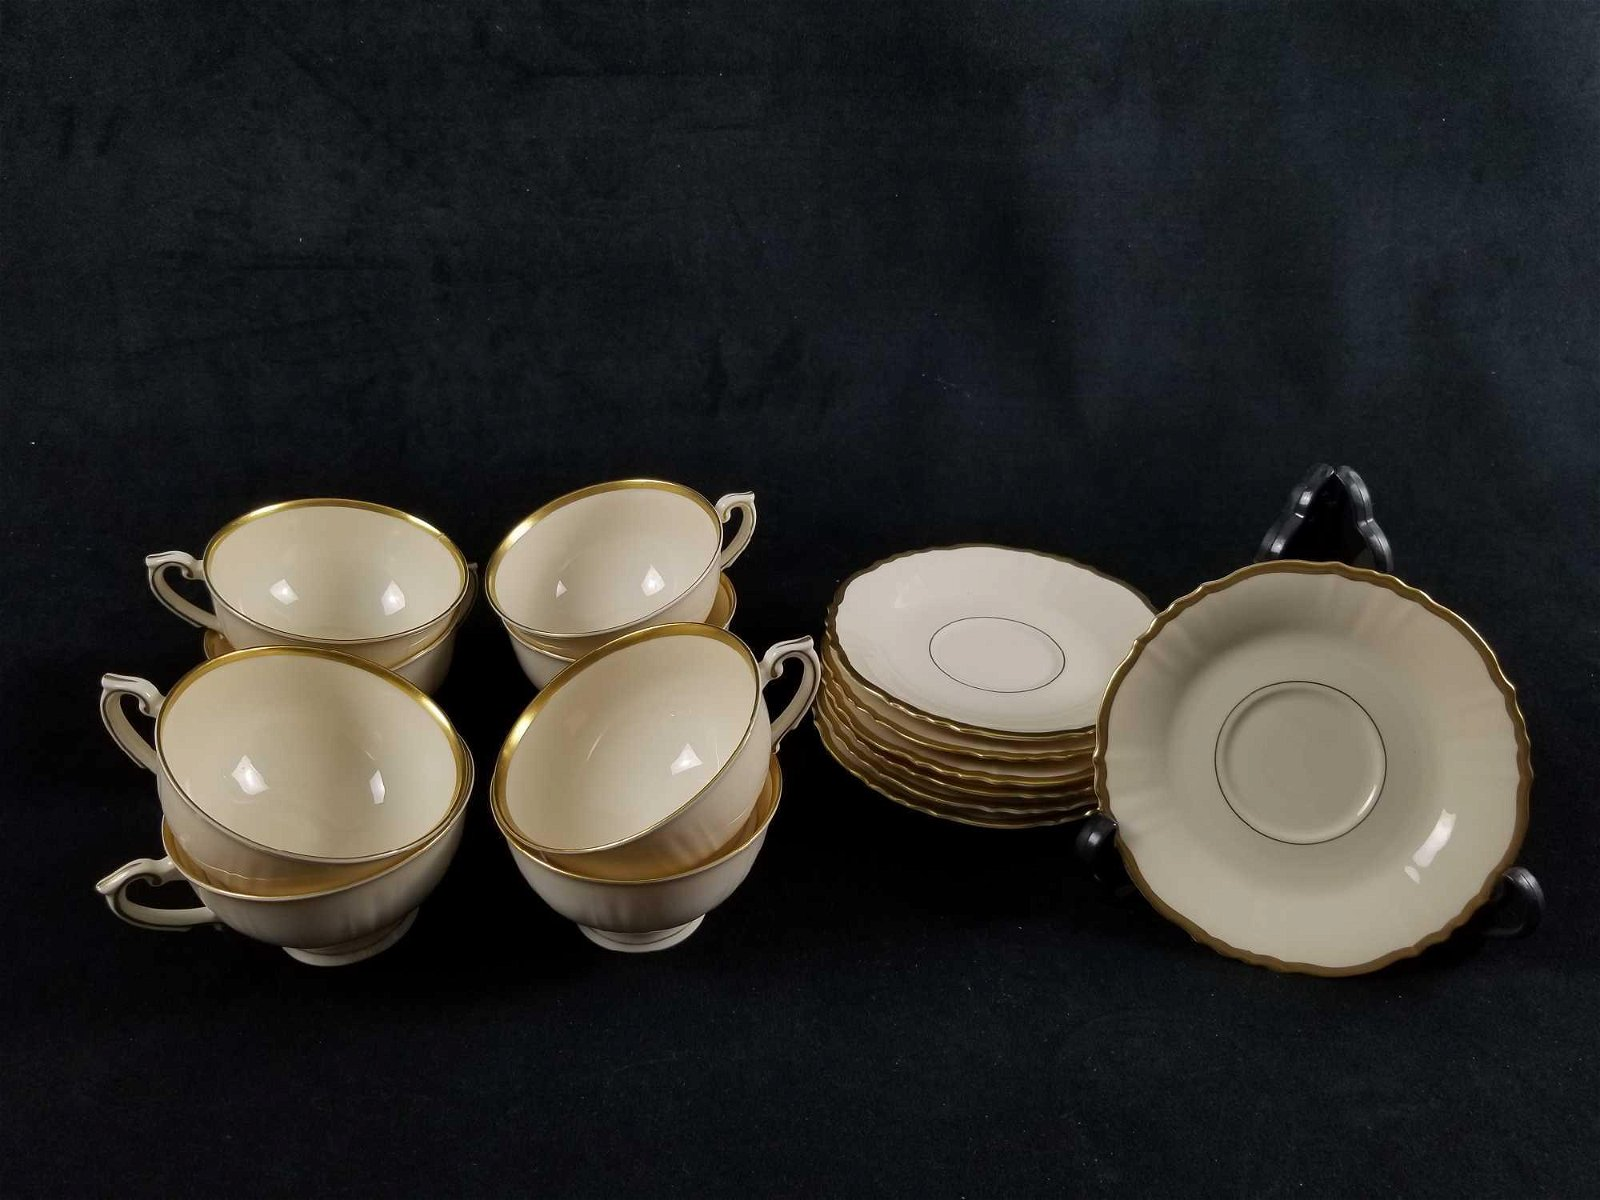 Cream And Gold Old Ivory China Teacup And Saucer Lot of